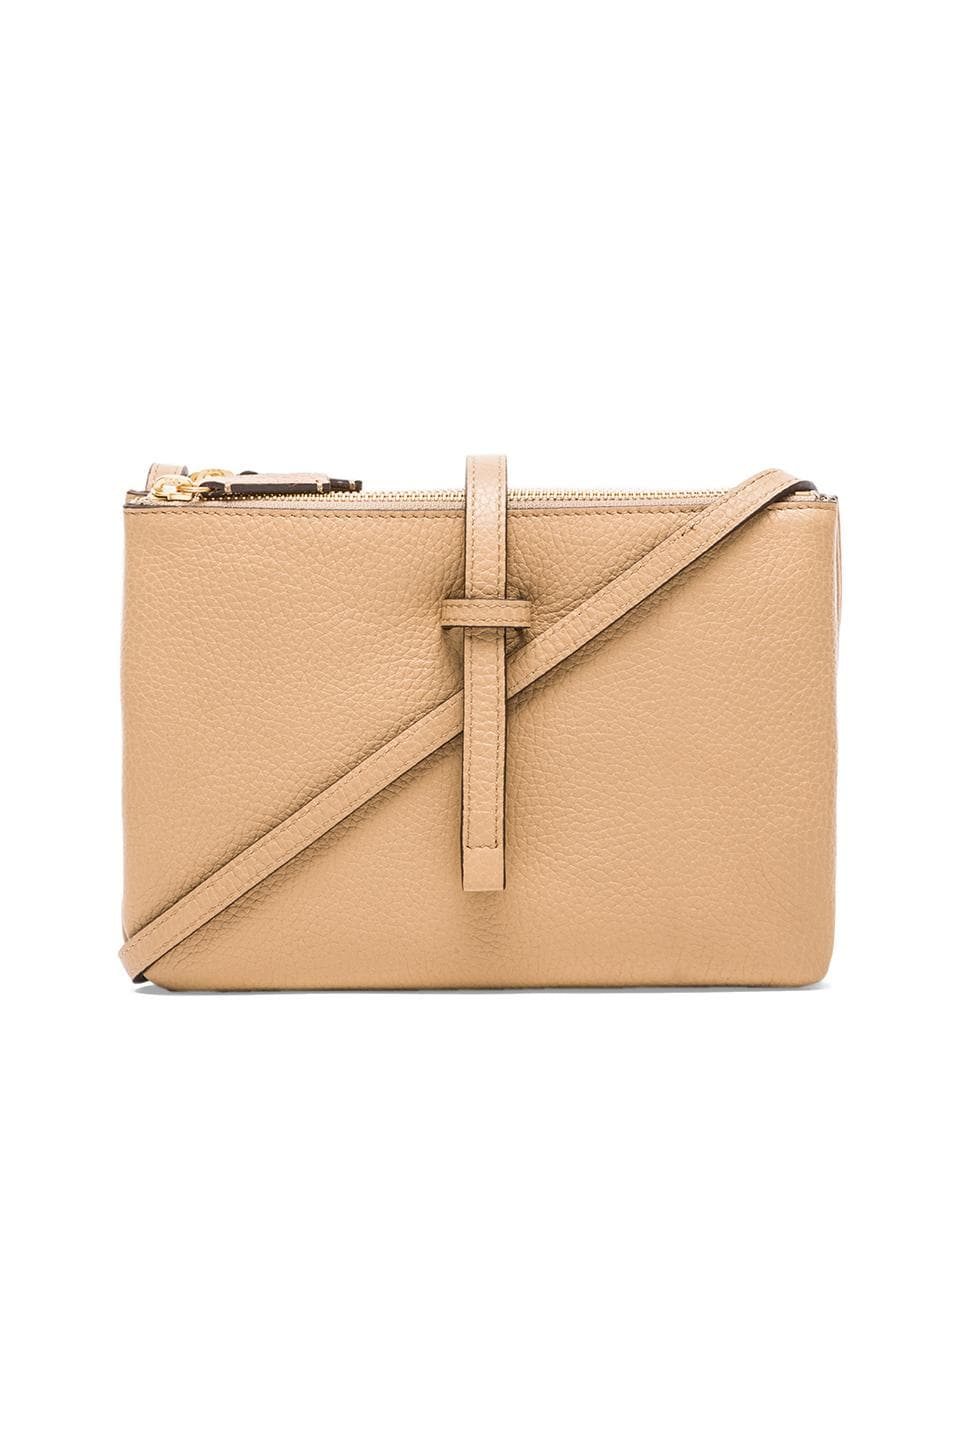 Annabel Ingall Jojo Crossbody in Honey